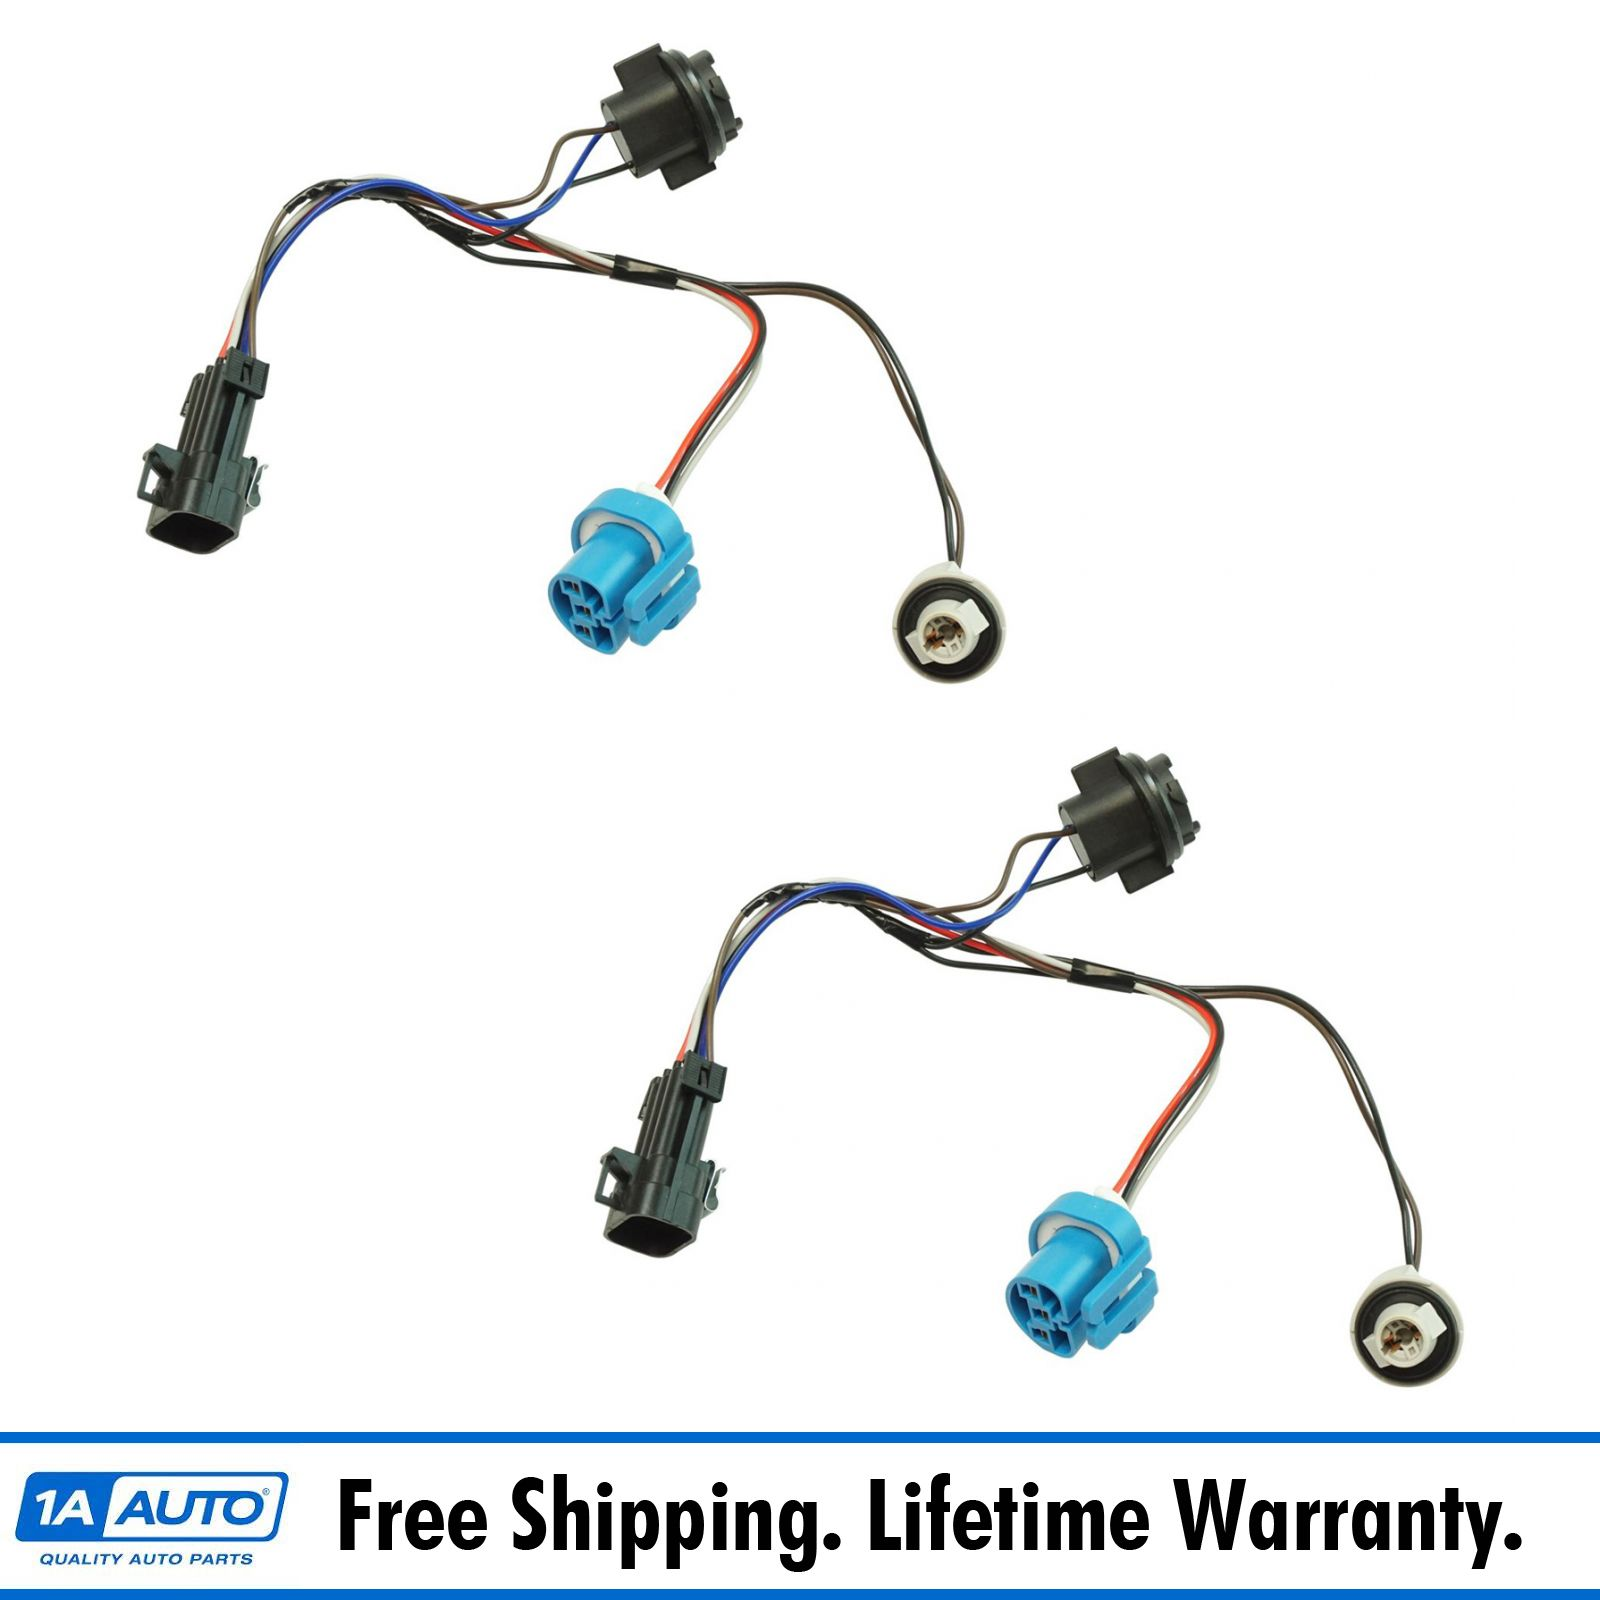 1AZMA00009 dorman headlight wiring harness side pair for chevy cobalt pontiac 1941 pontiac wiring harness at gsmx.co